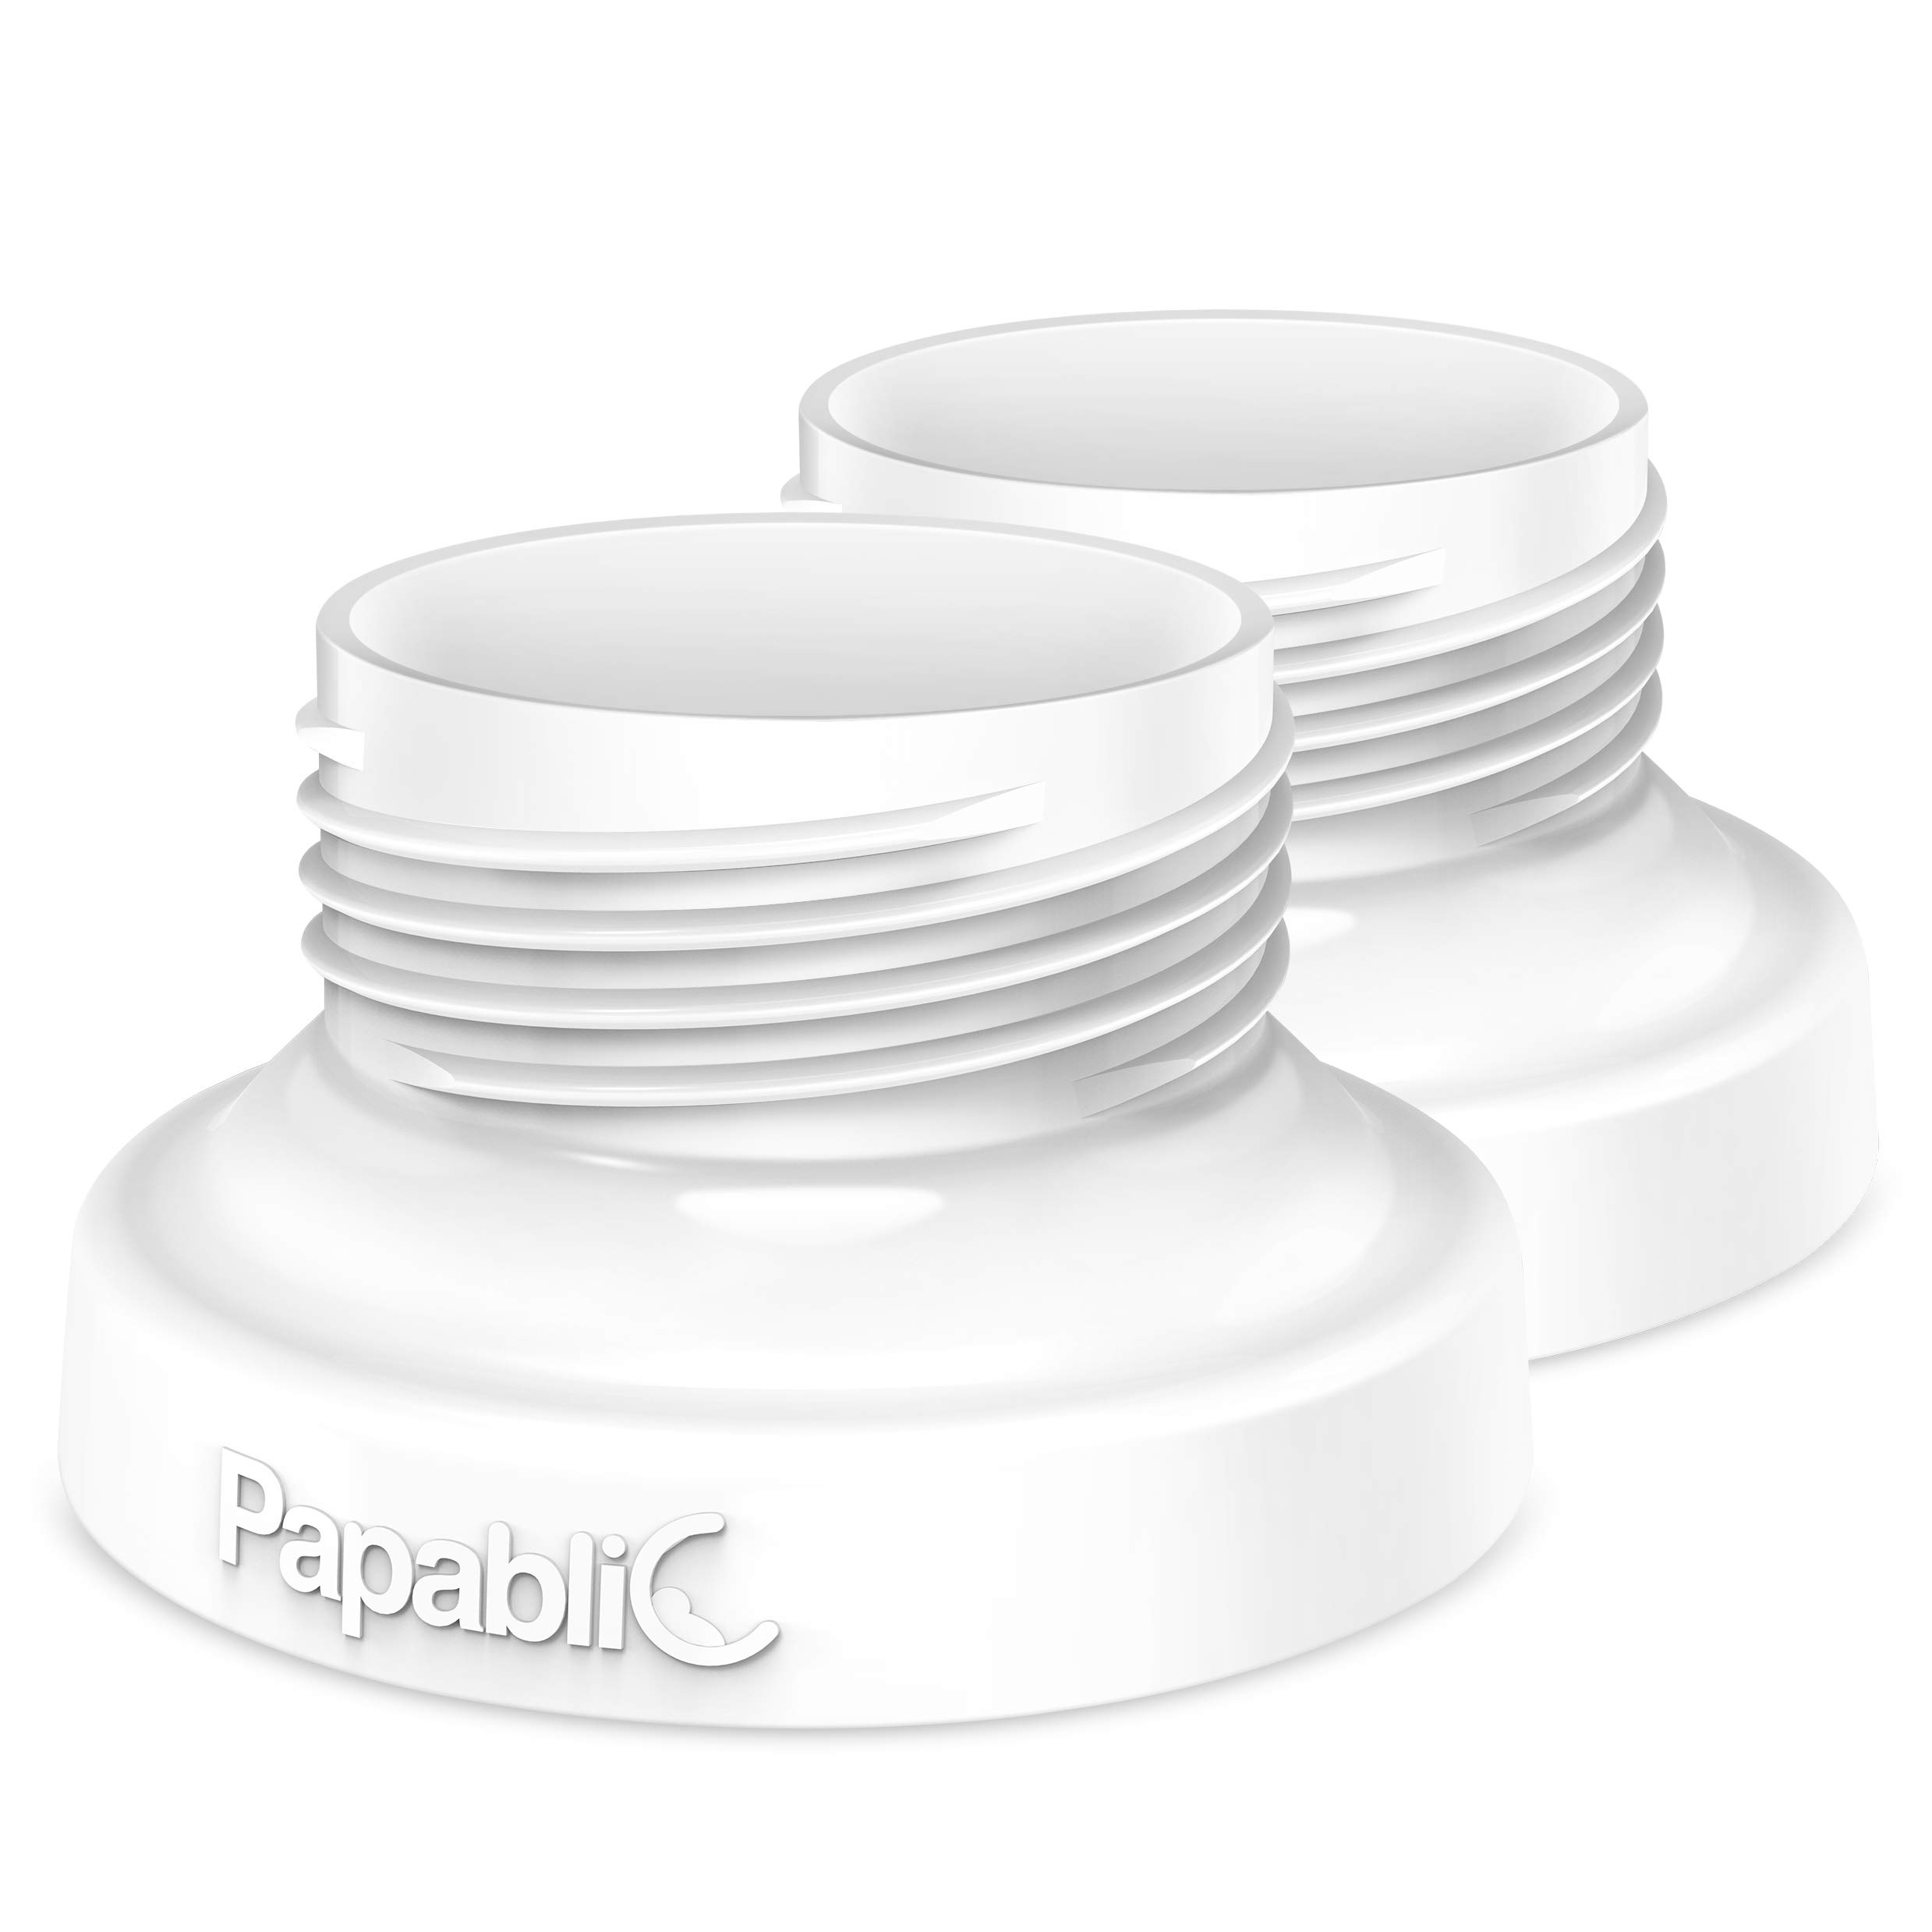 Papablic Direct Pump Bottle Adapter, for Spectra S1 S2, Avent Breast Pumps to Use with Comotomo Baby Bottles, 2 Pack by Papablic